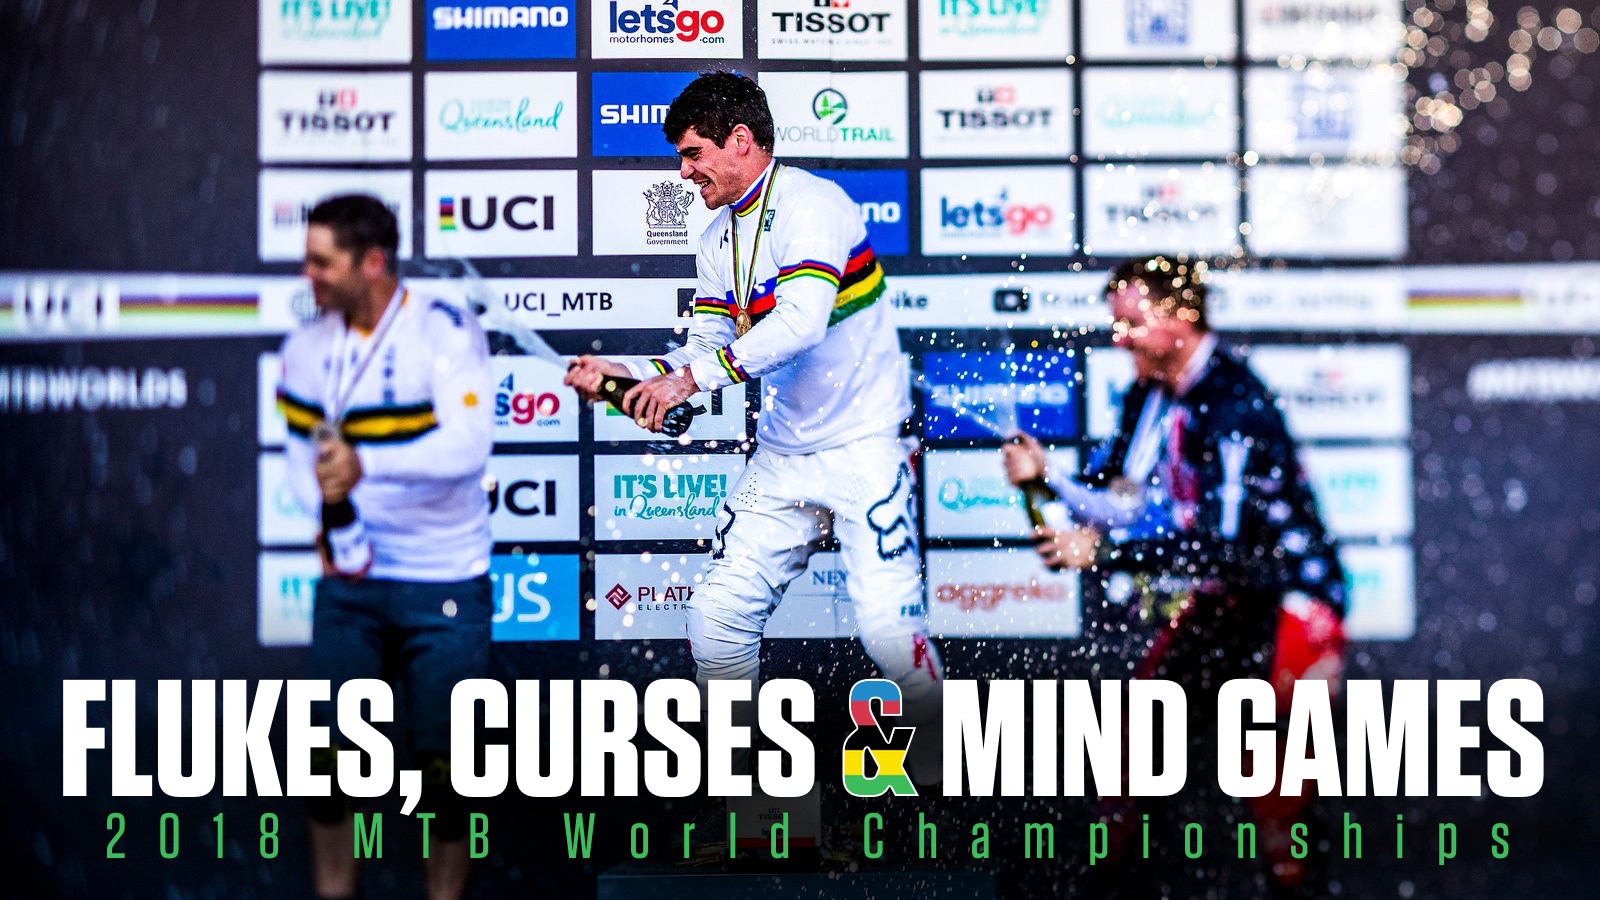 FLUKES, CURSES AND MIND GAMES | 2018 MTB World Championships, Lenzerheide